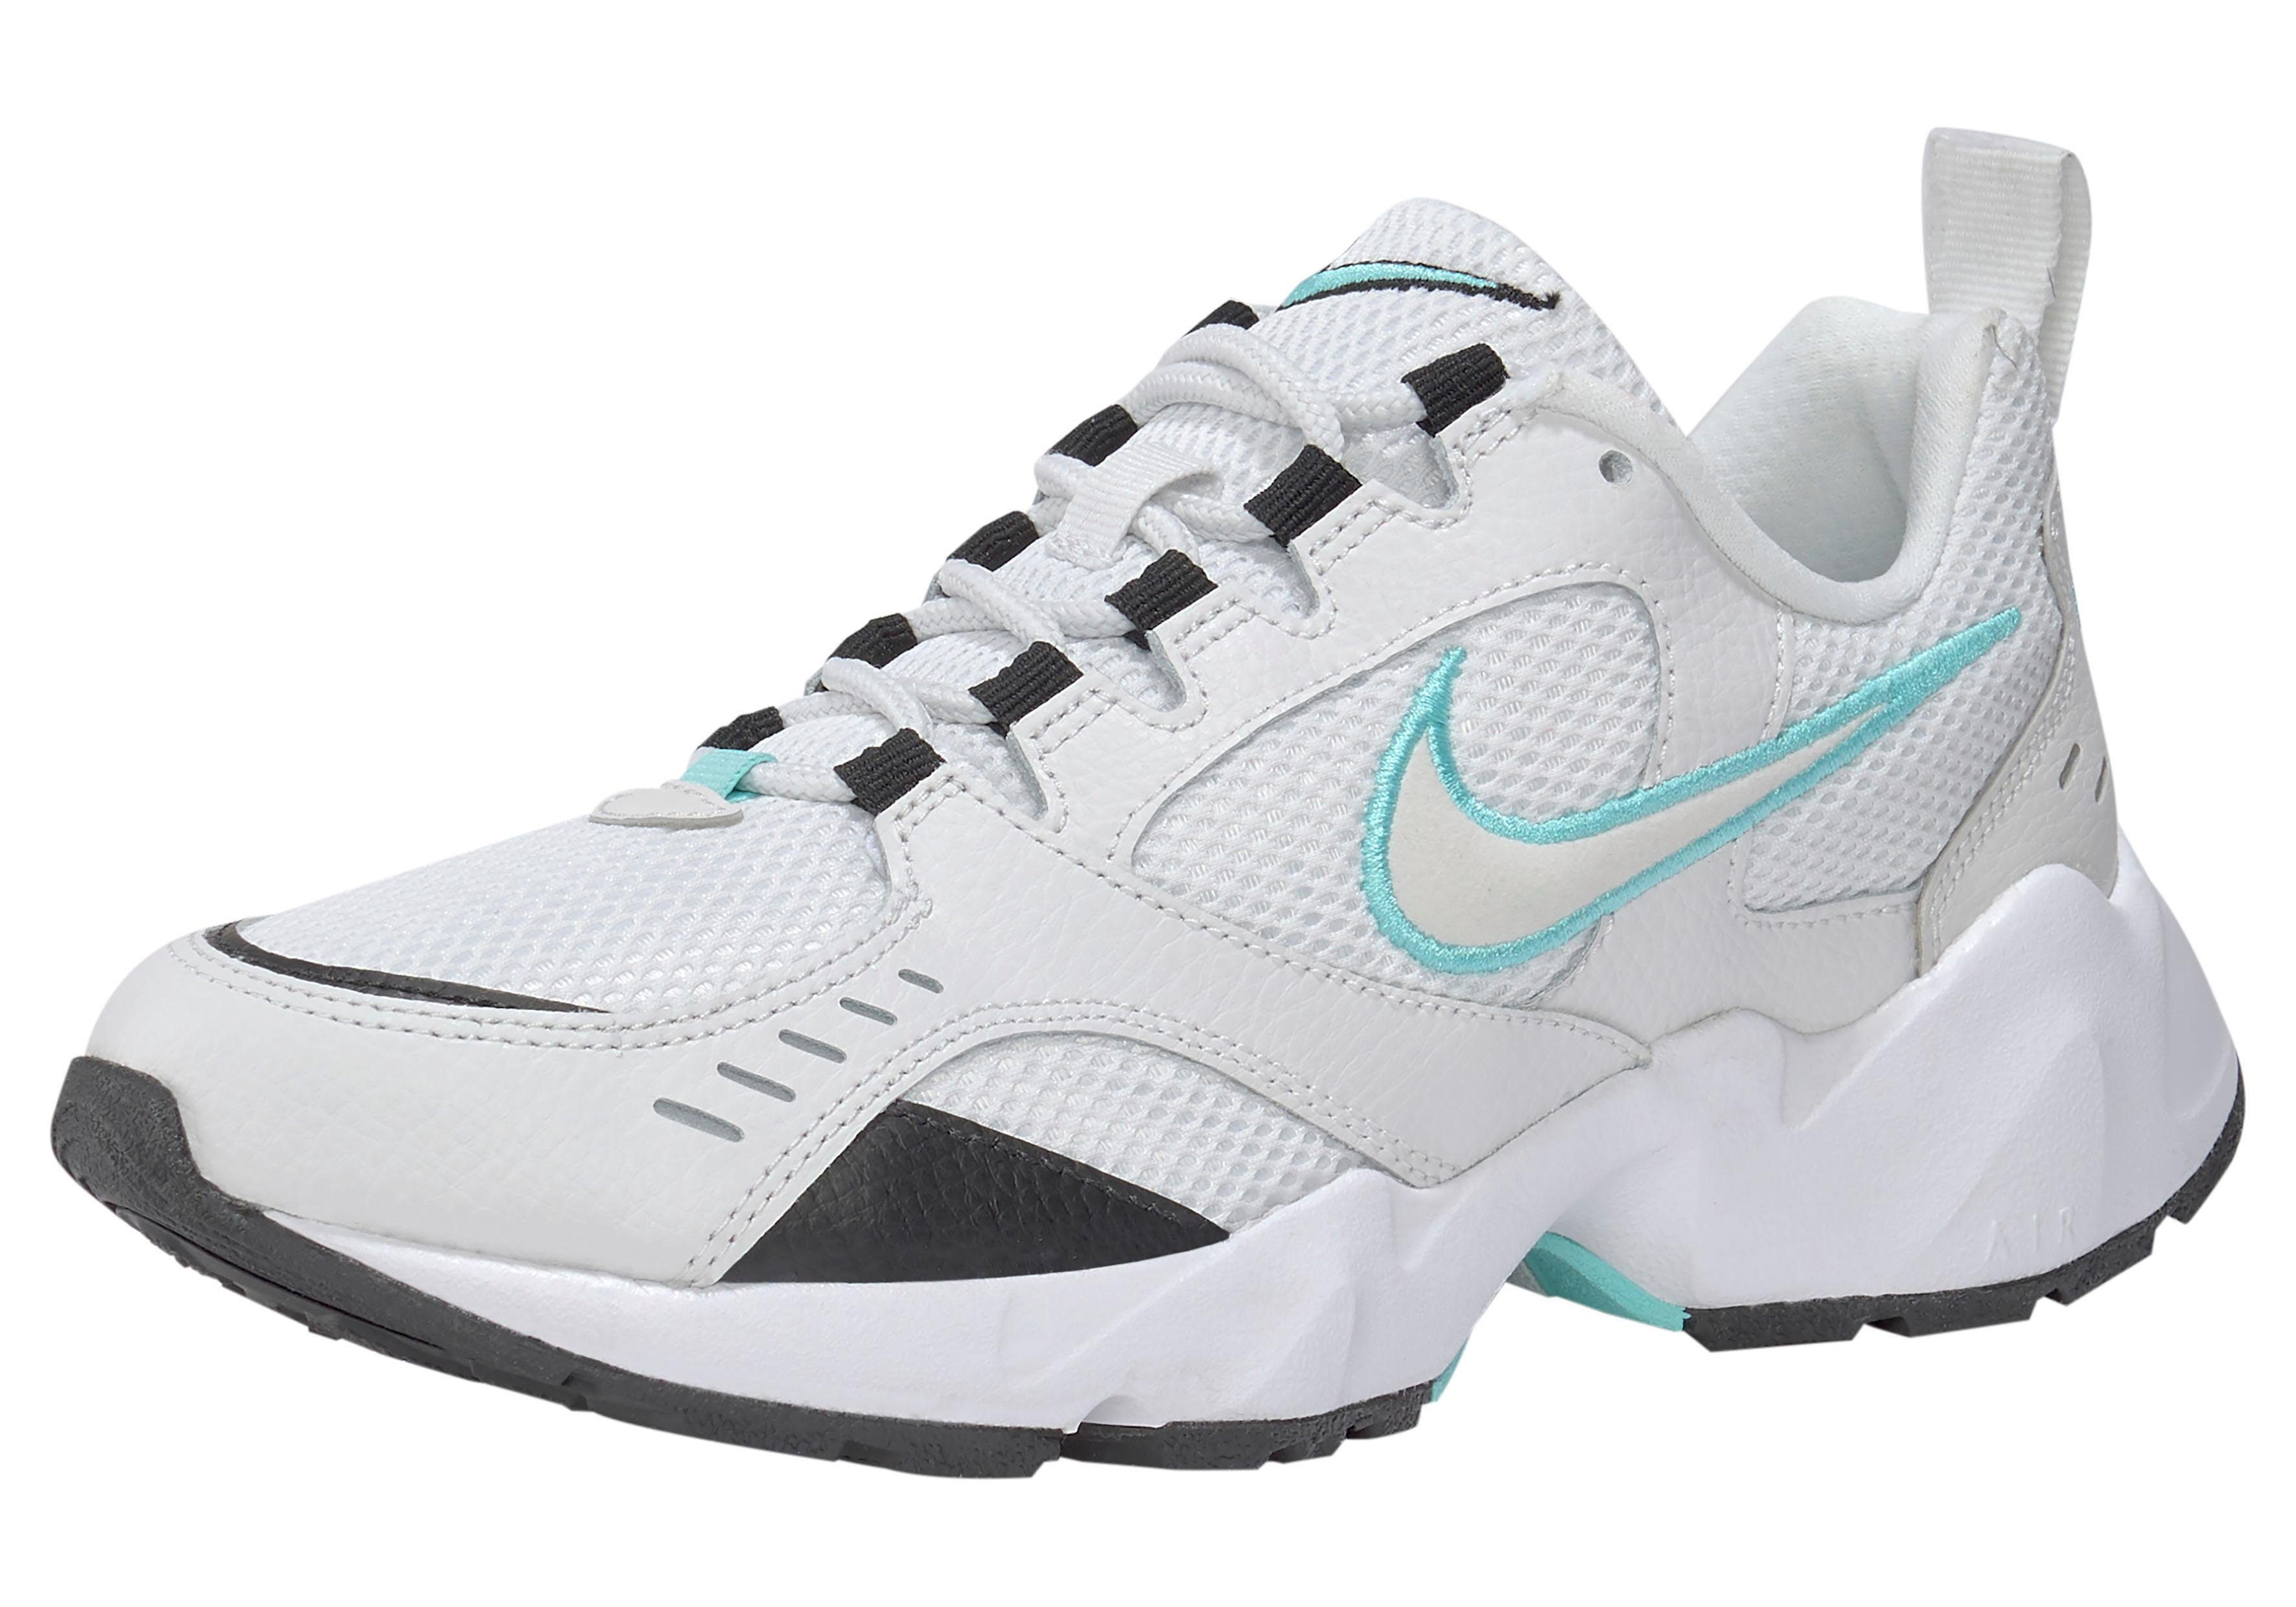 Nike Sportswear »Wmns Air Heights« Sneaker, Stylischer Dad Sneaker von Nike Sportswear online kaufen | OTTO